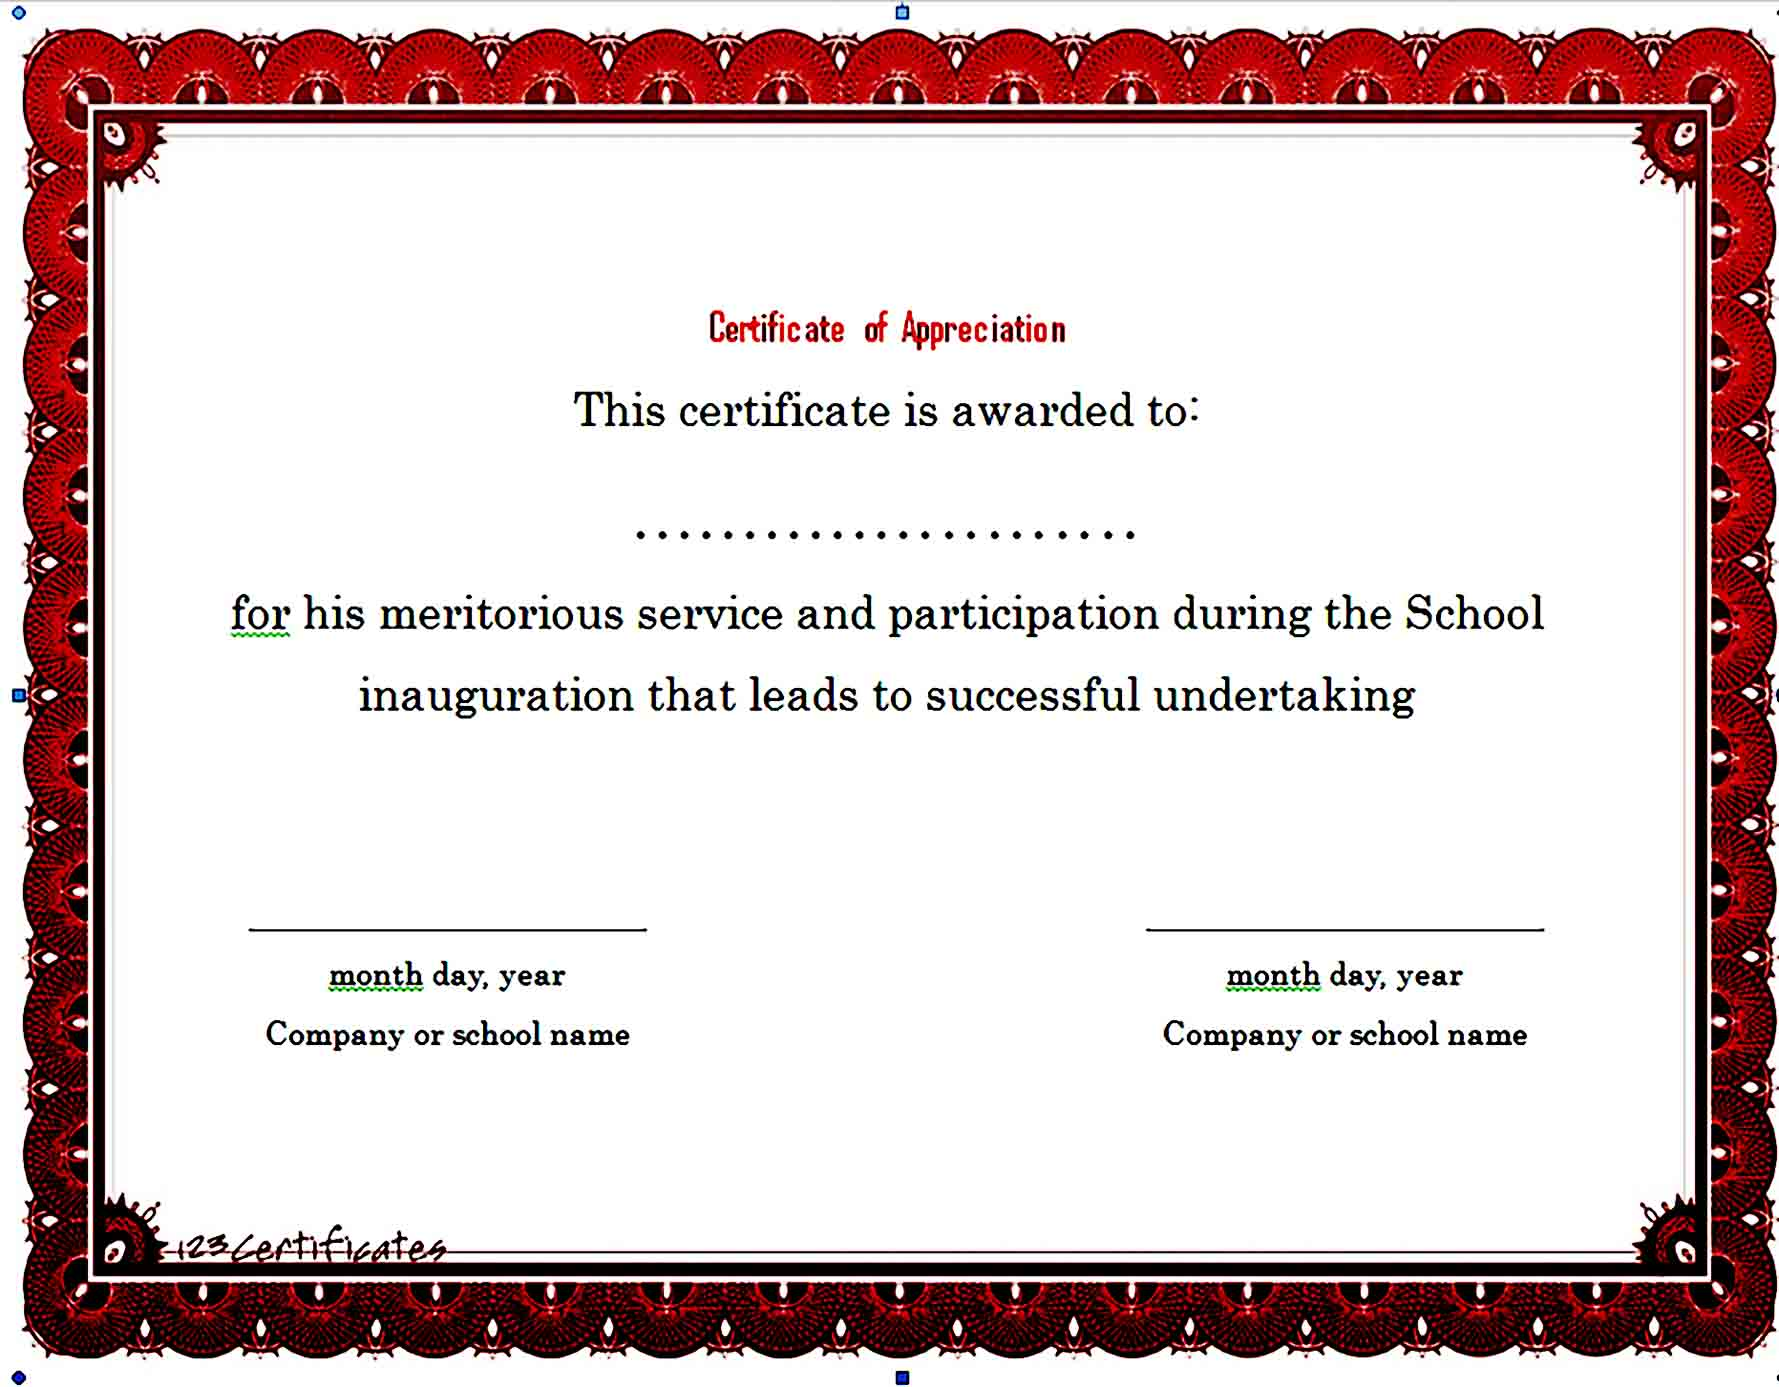 Certificate of Appreciation 01